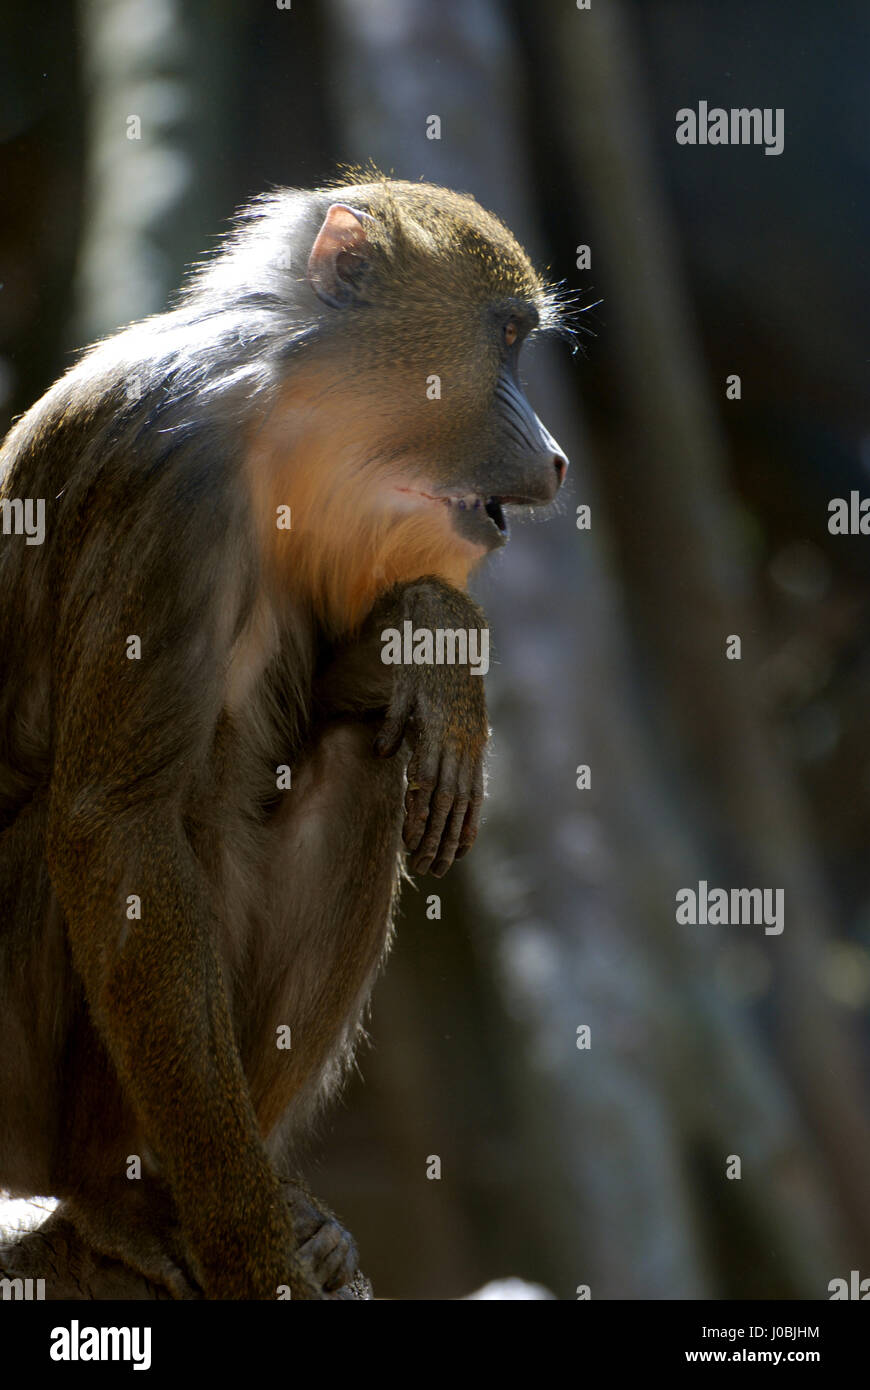 Really cute profile of a baby mandrill monkey stock image